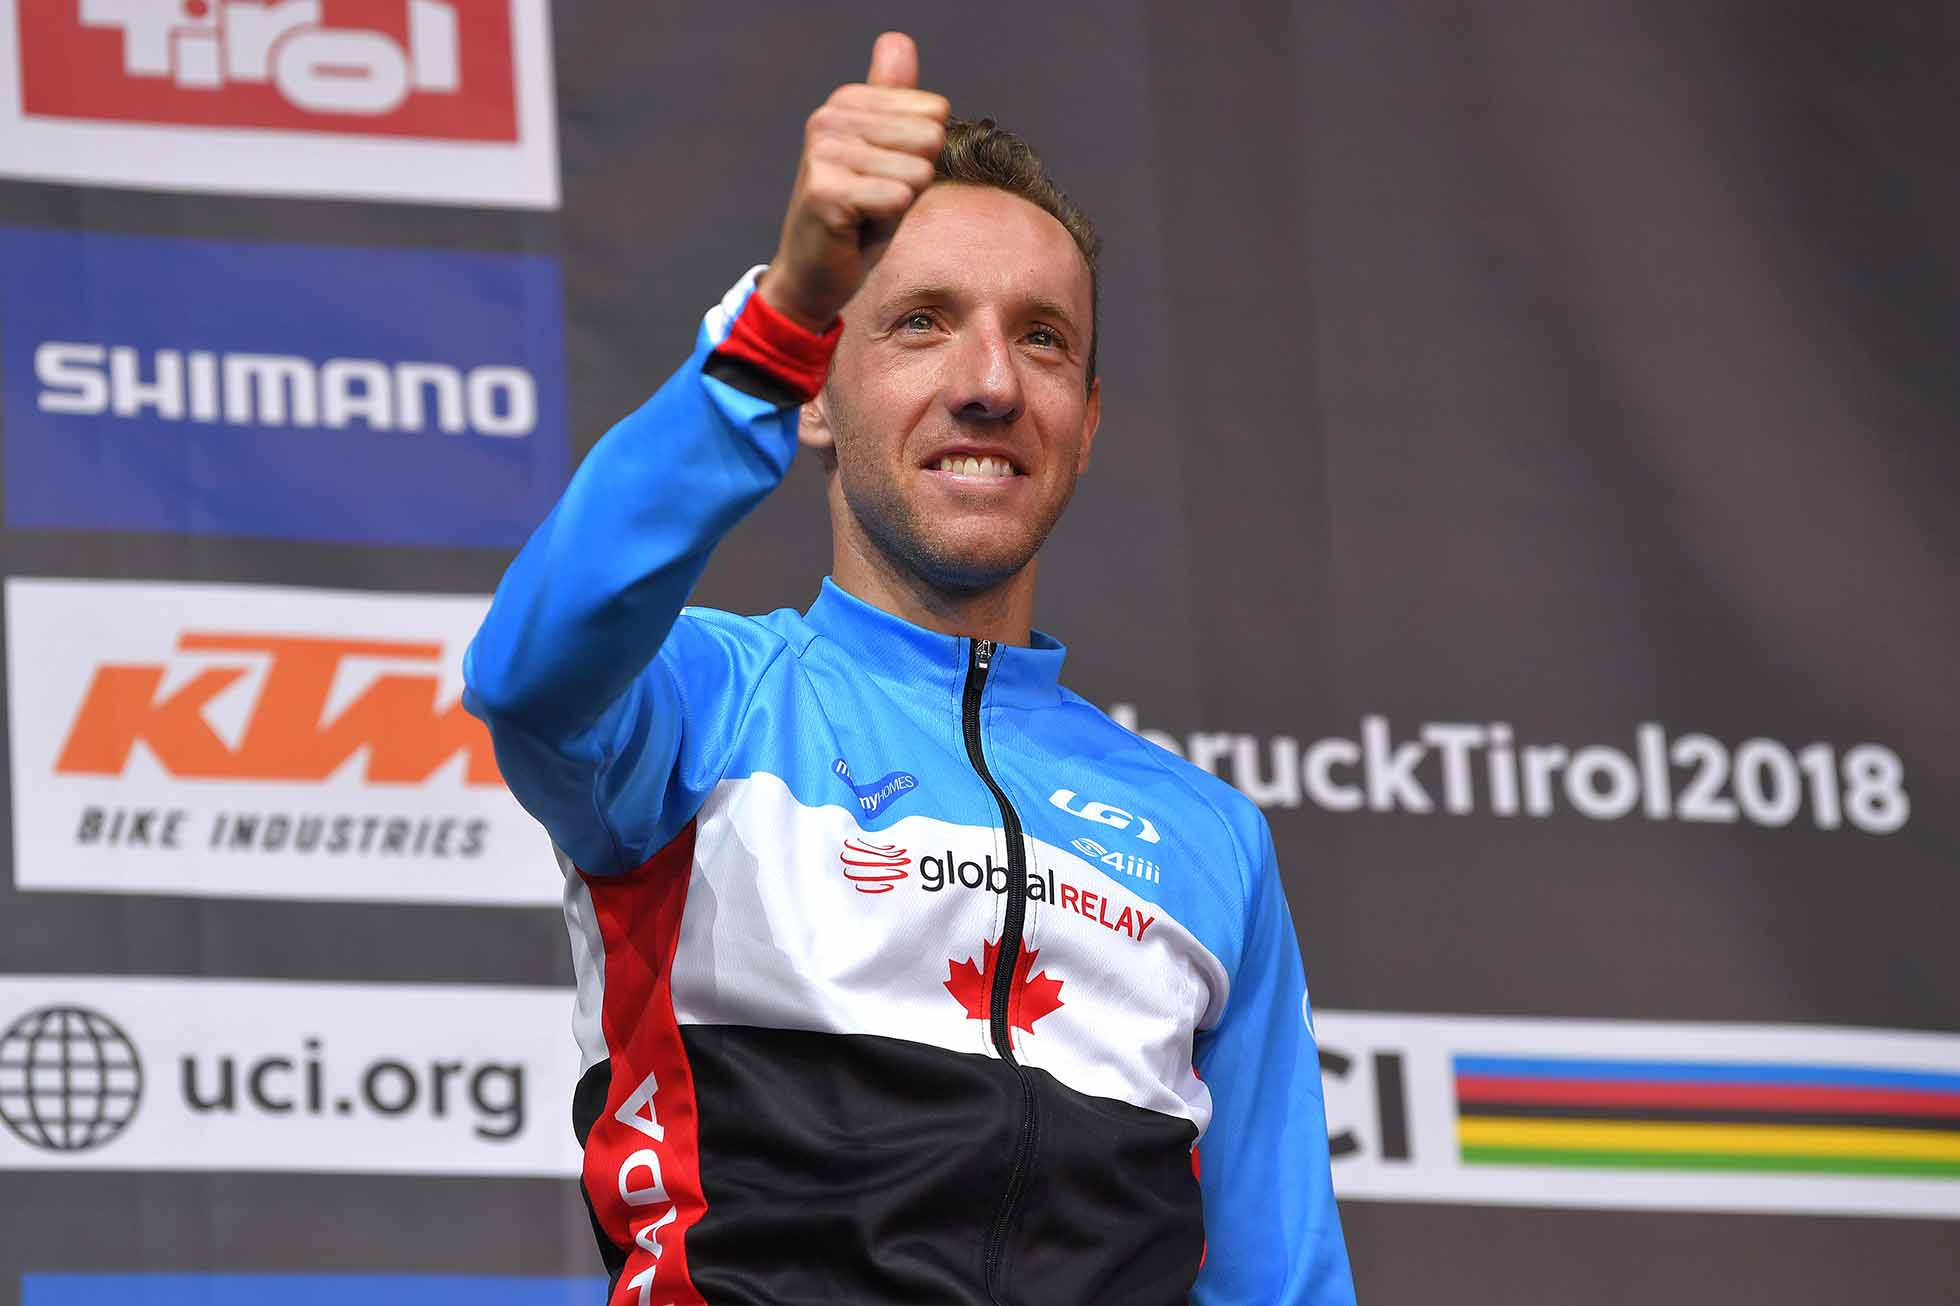 INNSBRUCK, AUSTRIA - SEPTEMBER 30: Podium / Michael Woods of Canada Bronze Medal / Celebration / during the Men Elite Road Race a 258,5km race from Kufstein to Innsbruck 582m at the 91st UCI Road World Championships 2018 / RR / RWC / on September 30, 2018 in Innsbruck, Austria. (Photo by Tim de Waele/Getty Images)